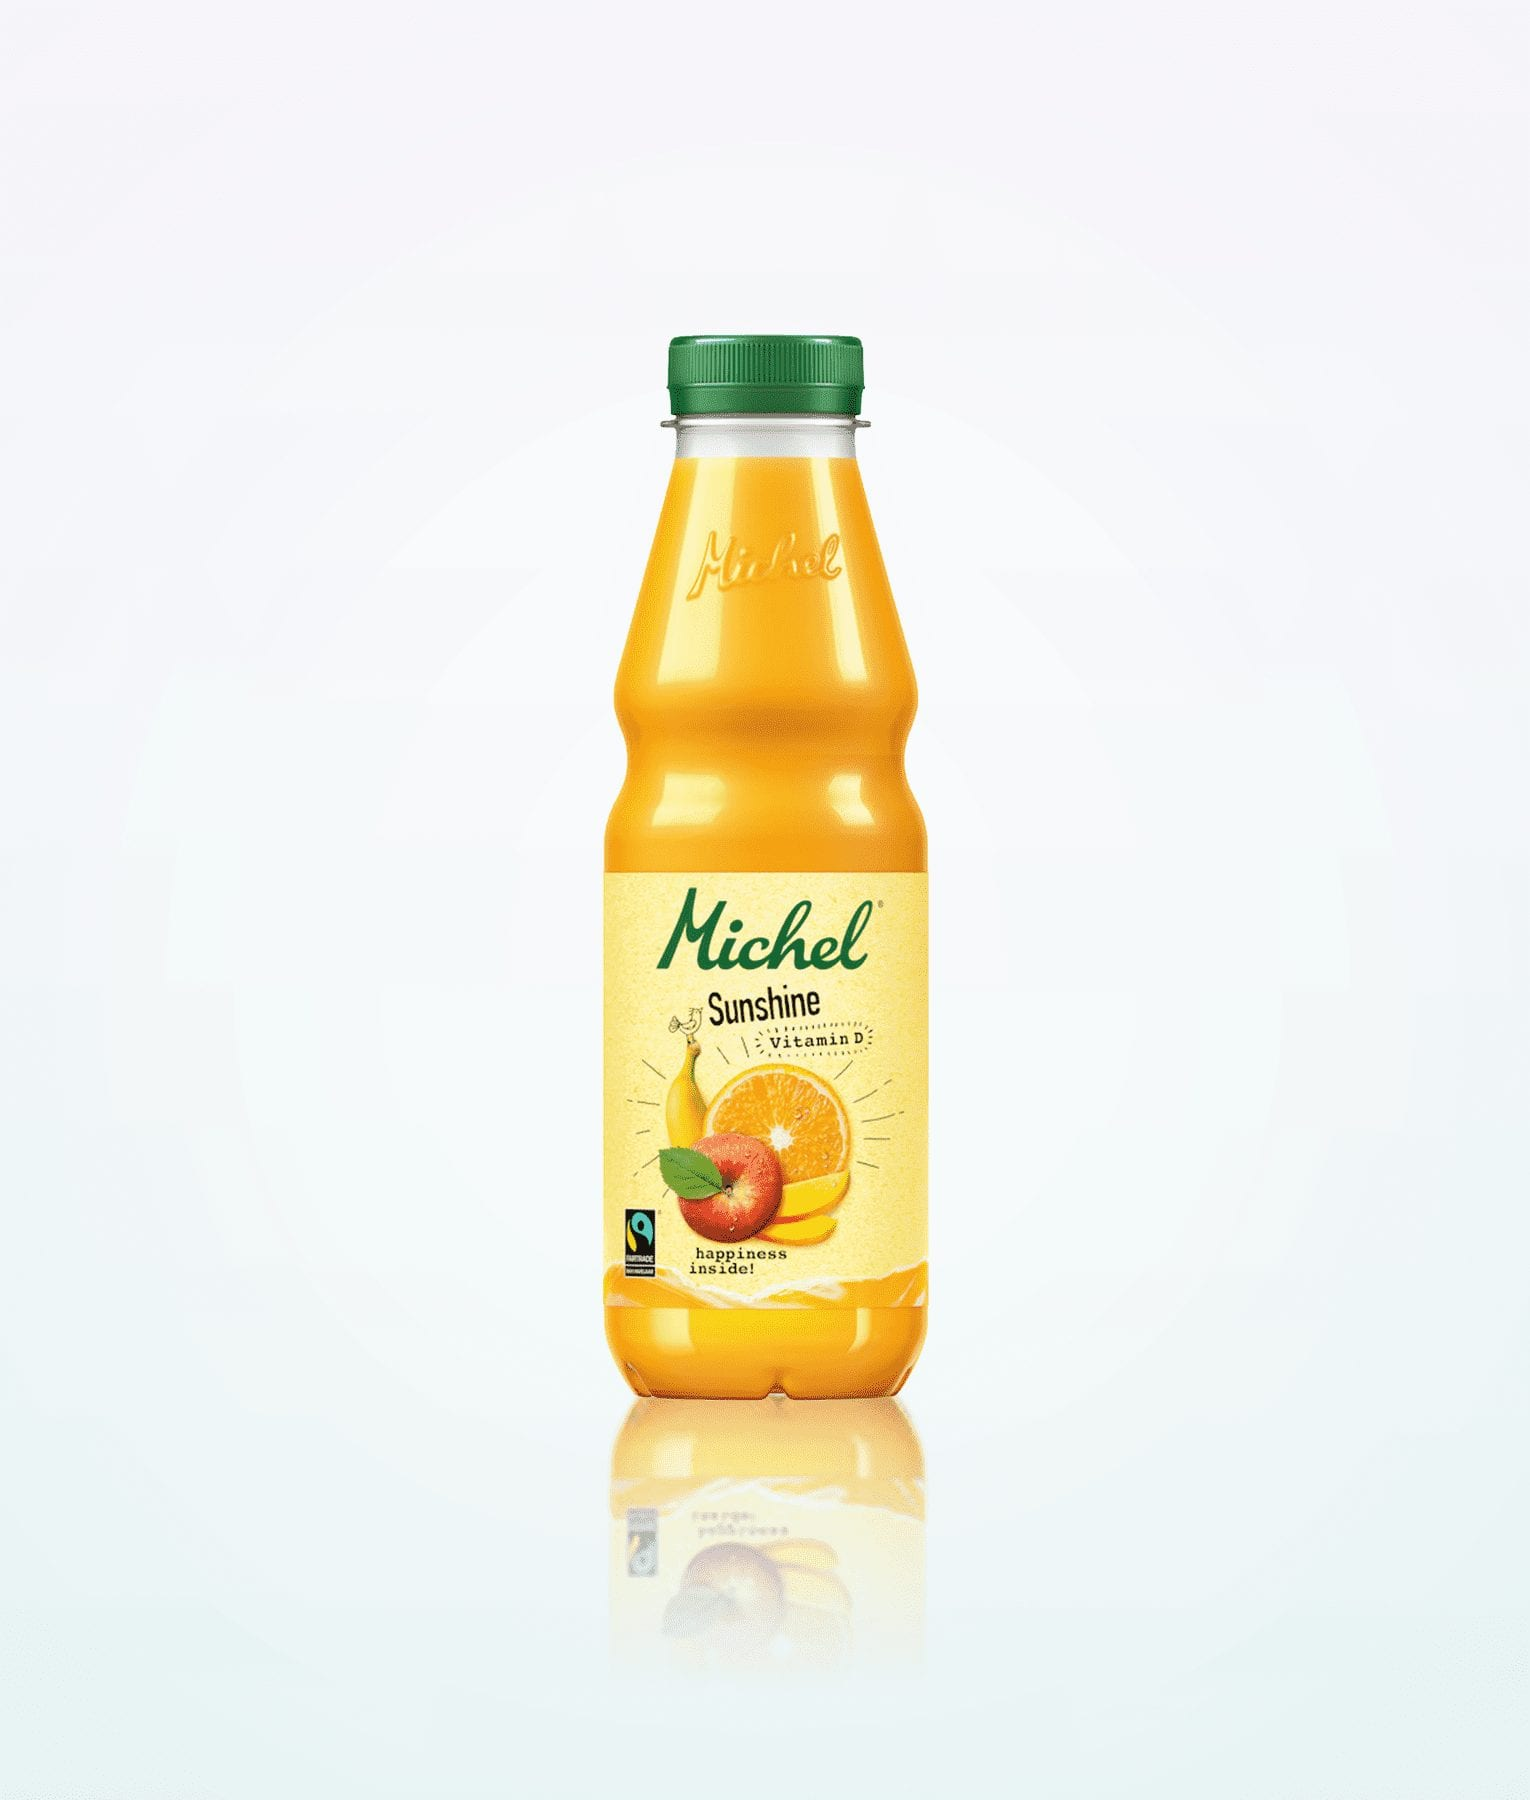 michel-fairtrade-sunshine-fruit-juice